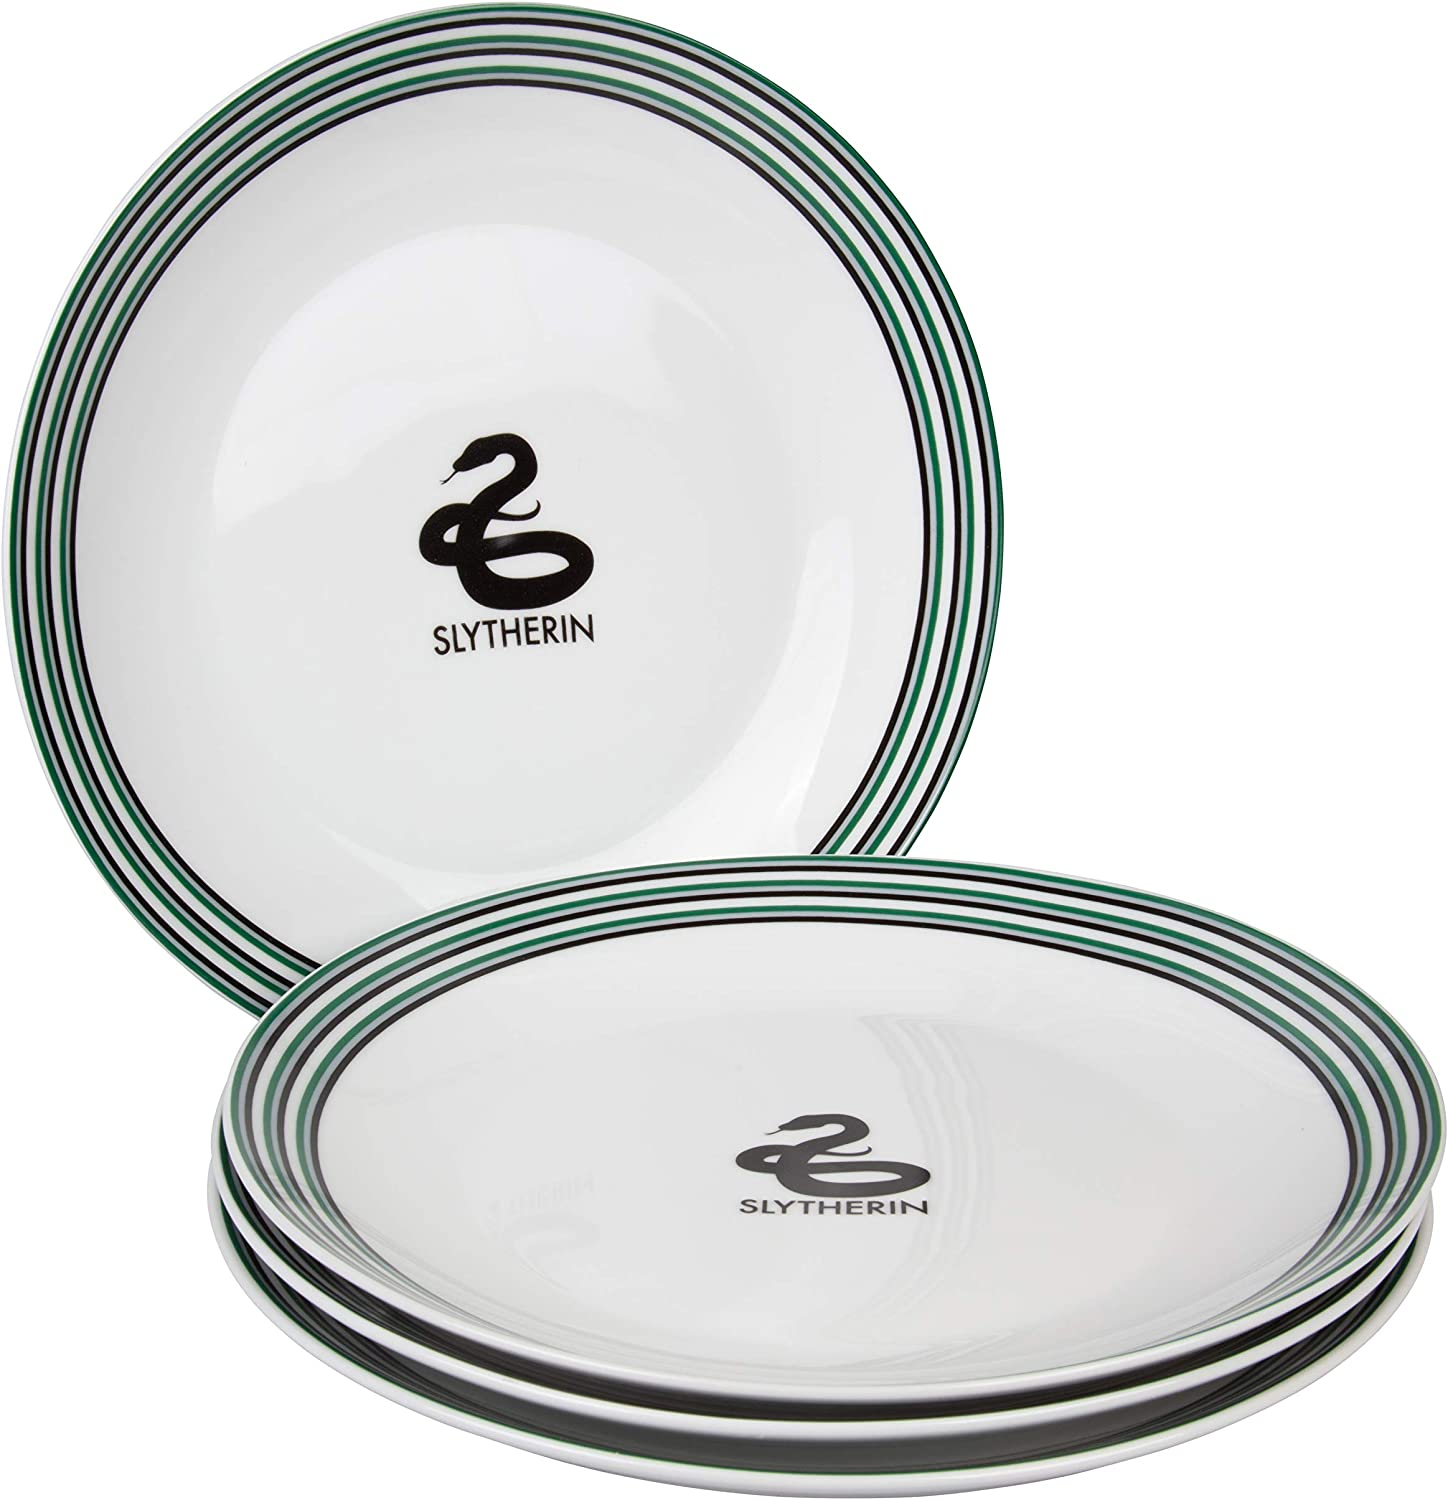 Ravenclaw and Slytherin 4 Bowls and 4 Mugs Harry Potter Hogwarts House Porcelain 16 piece Dinnerware Set Hufflepuff Includes 4 Dinner Plates Gryffindor 4 Salad Plates